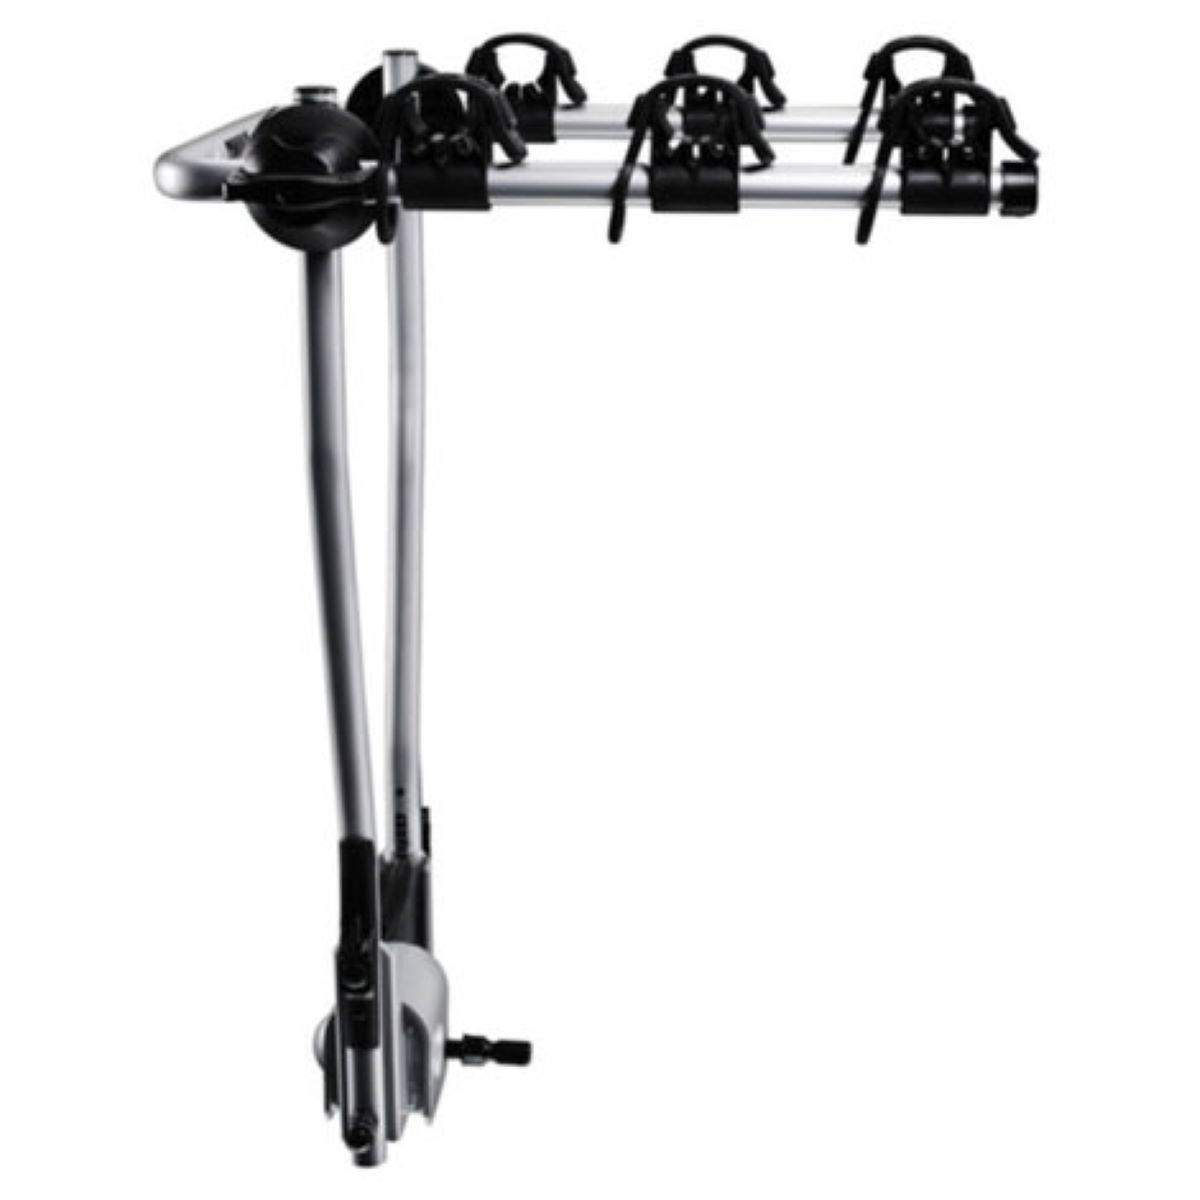 Thule 972 HangOn 3 Bike Towball Carrier